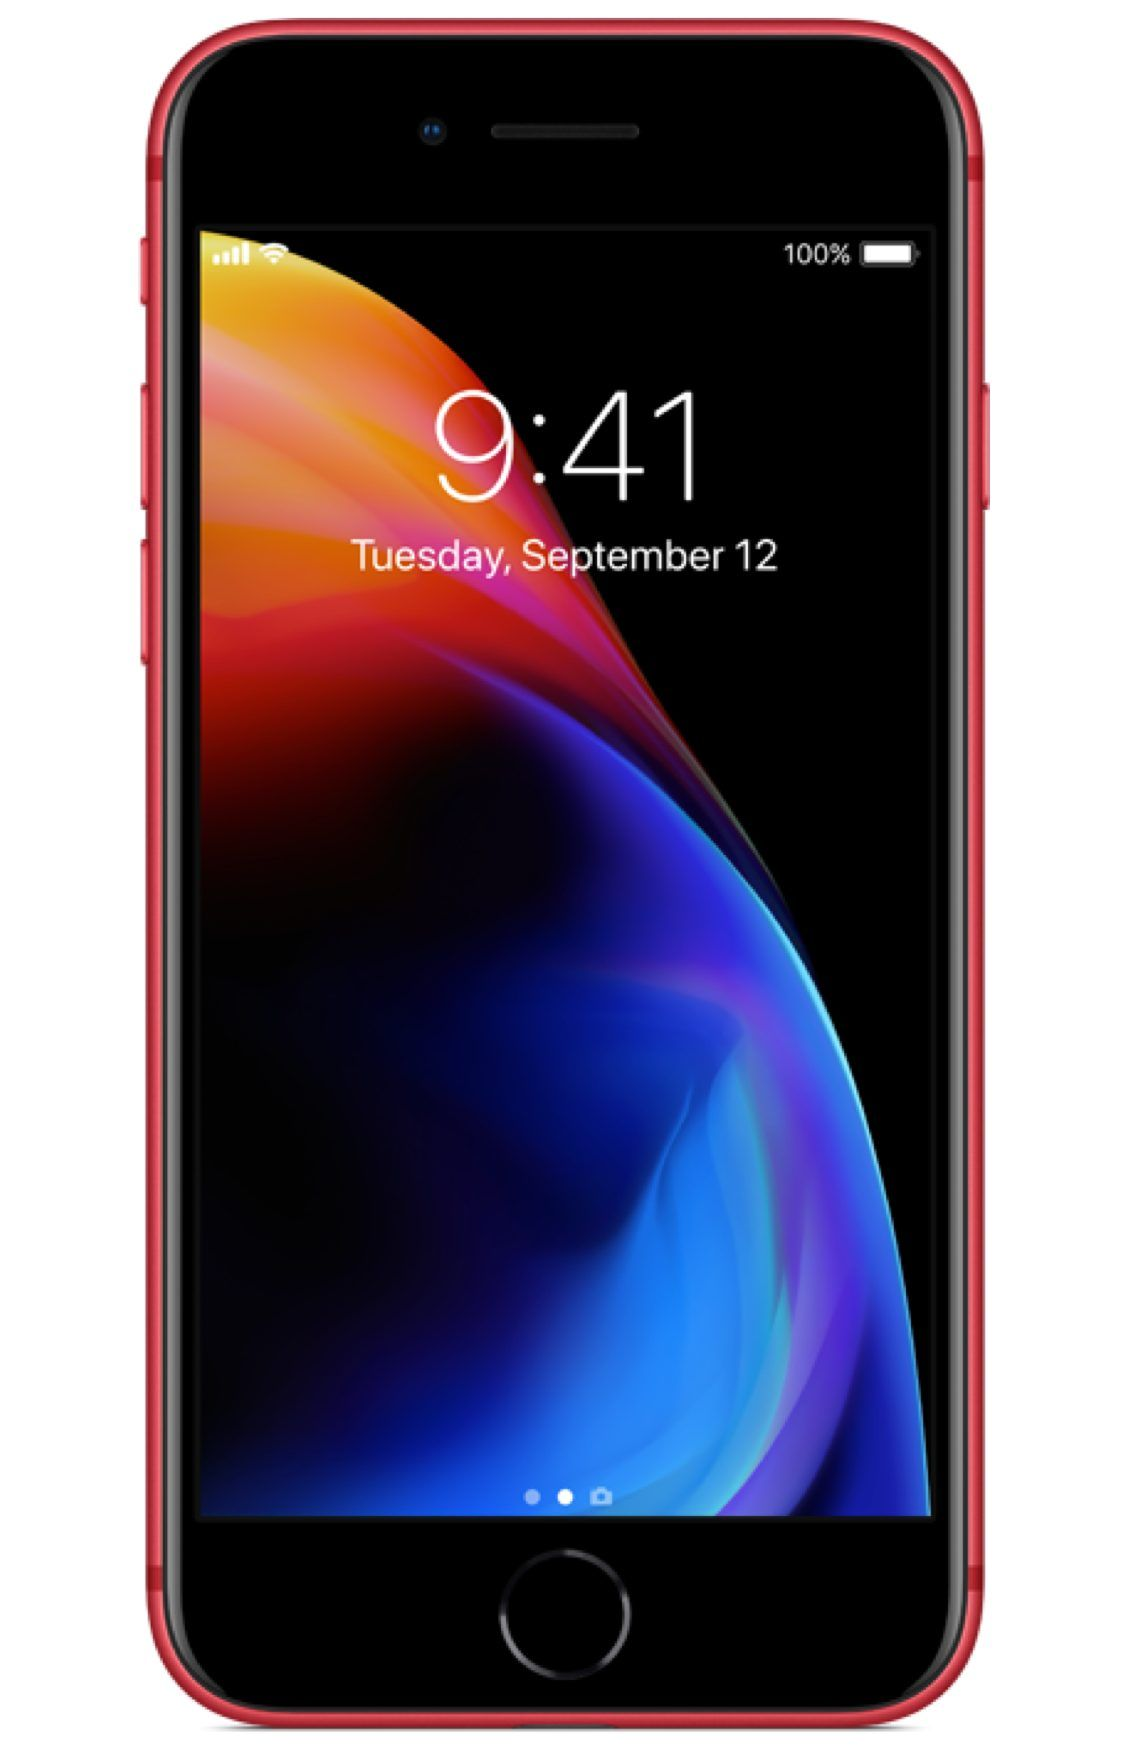 Apple Iphone 8 Pre Owned Features And Reviews In 2021 Boost Mobile Apple Iphone Cell Phone Contract